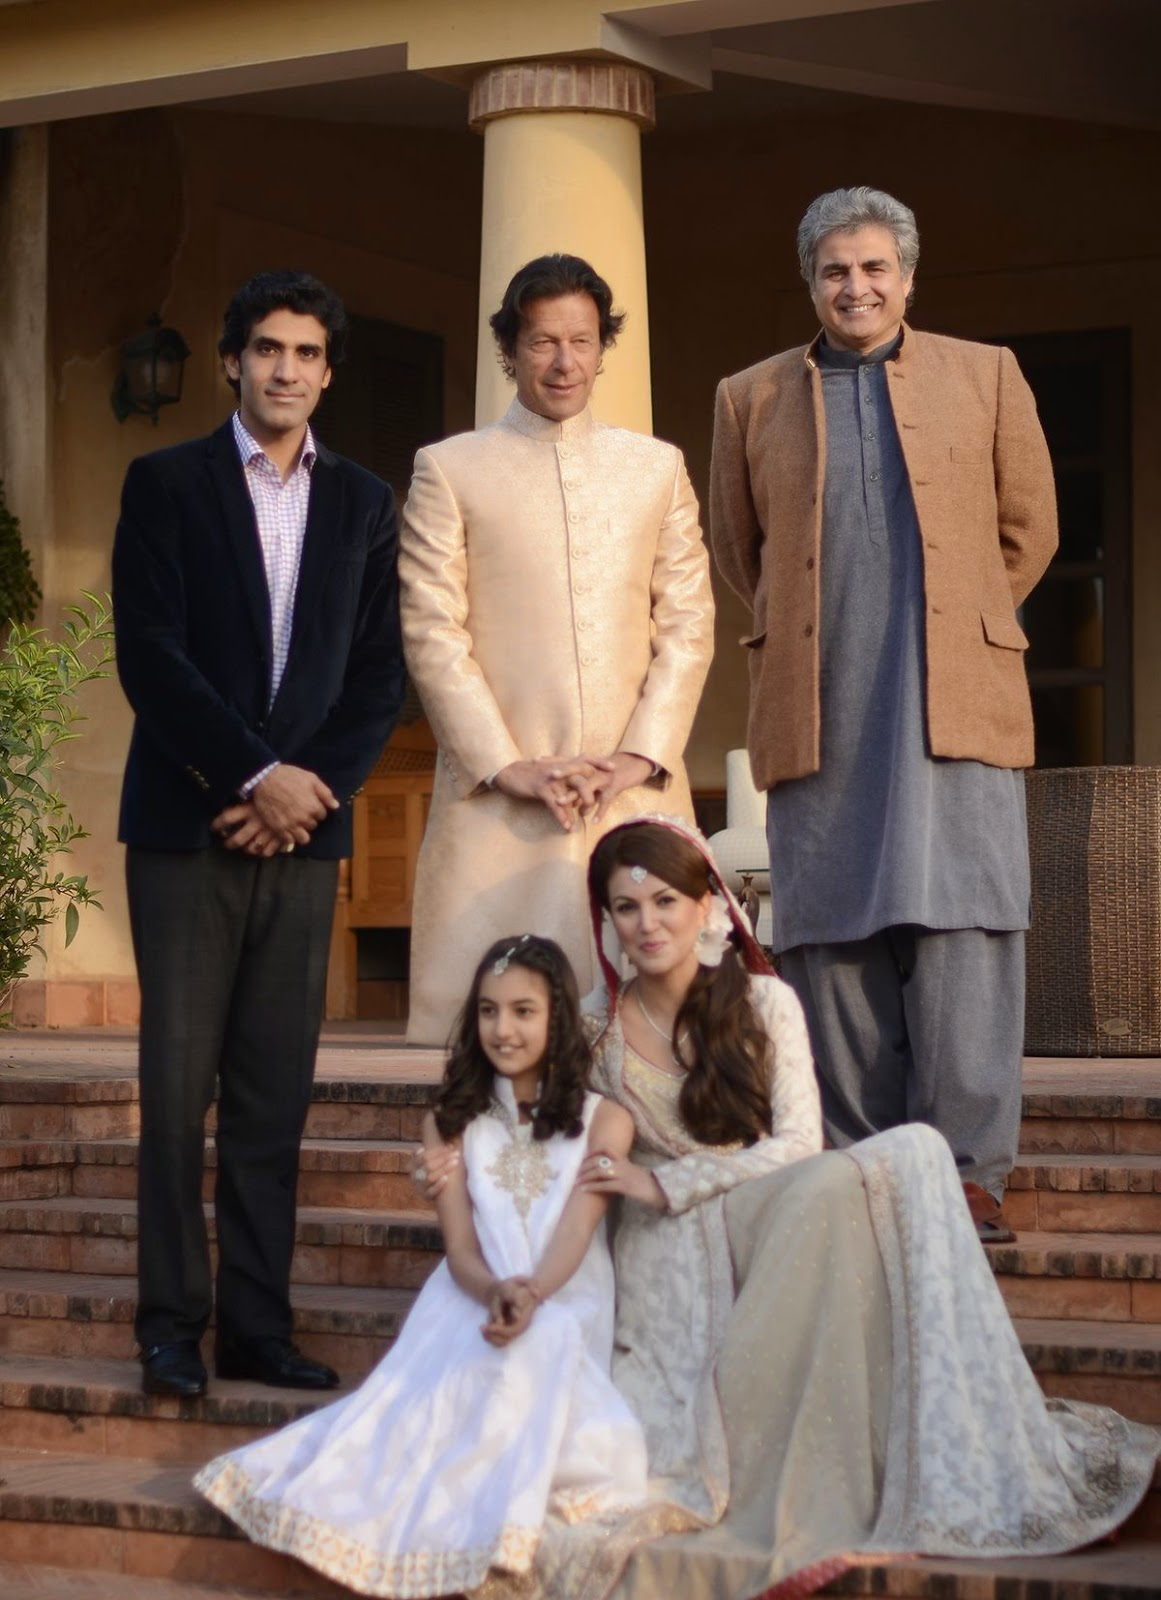 Unviewed Photos - Imran Khan and Reham Khan wedding shoot